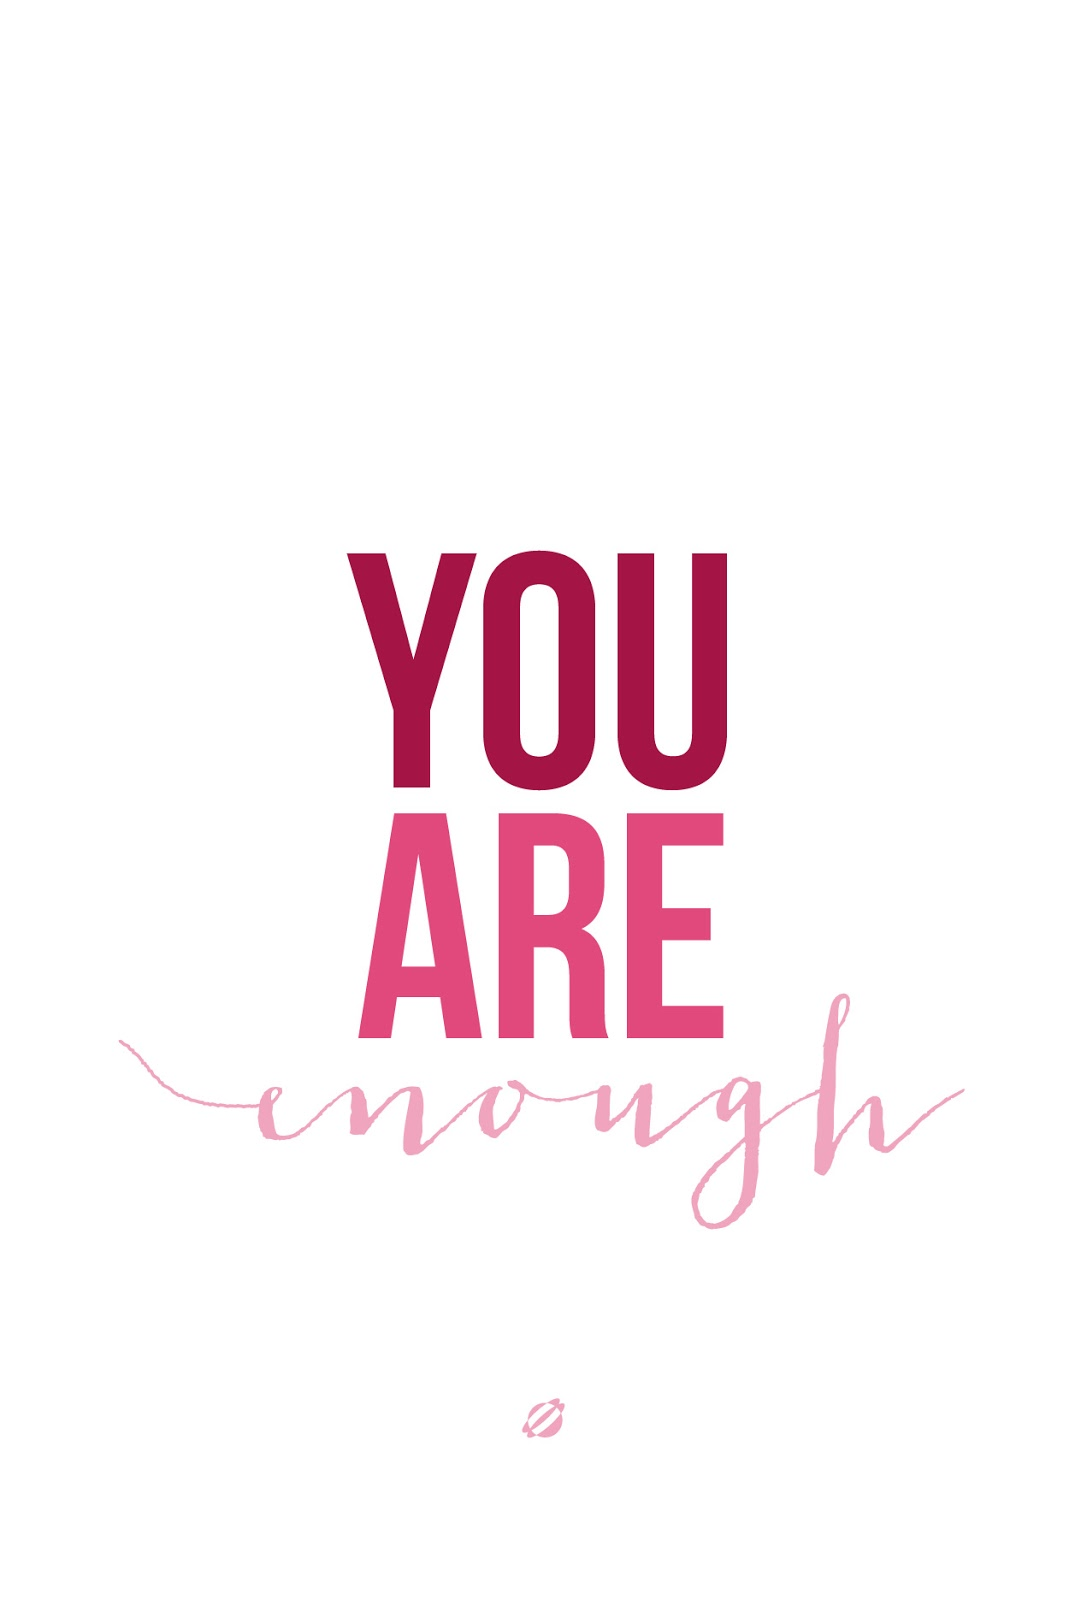 LostBumblebee ©2014 You Are Enough- #FreePrintable -Personal Use Only